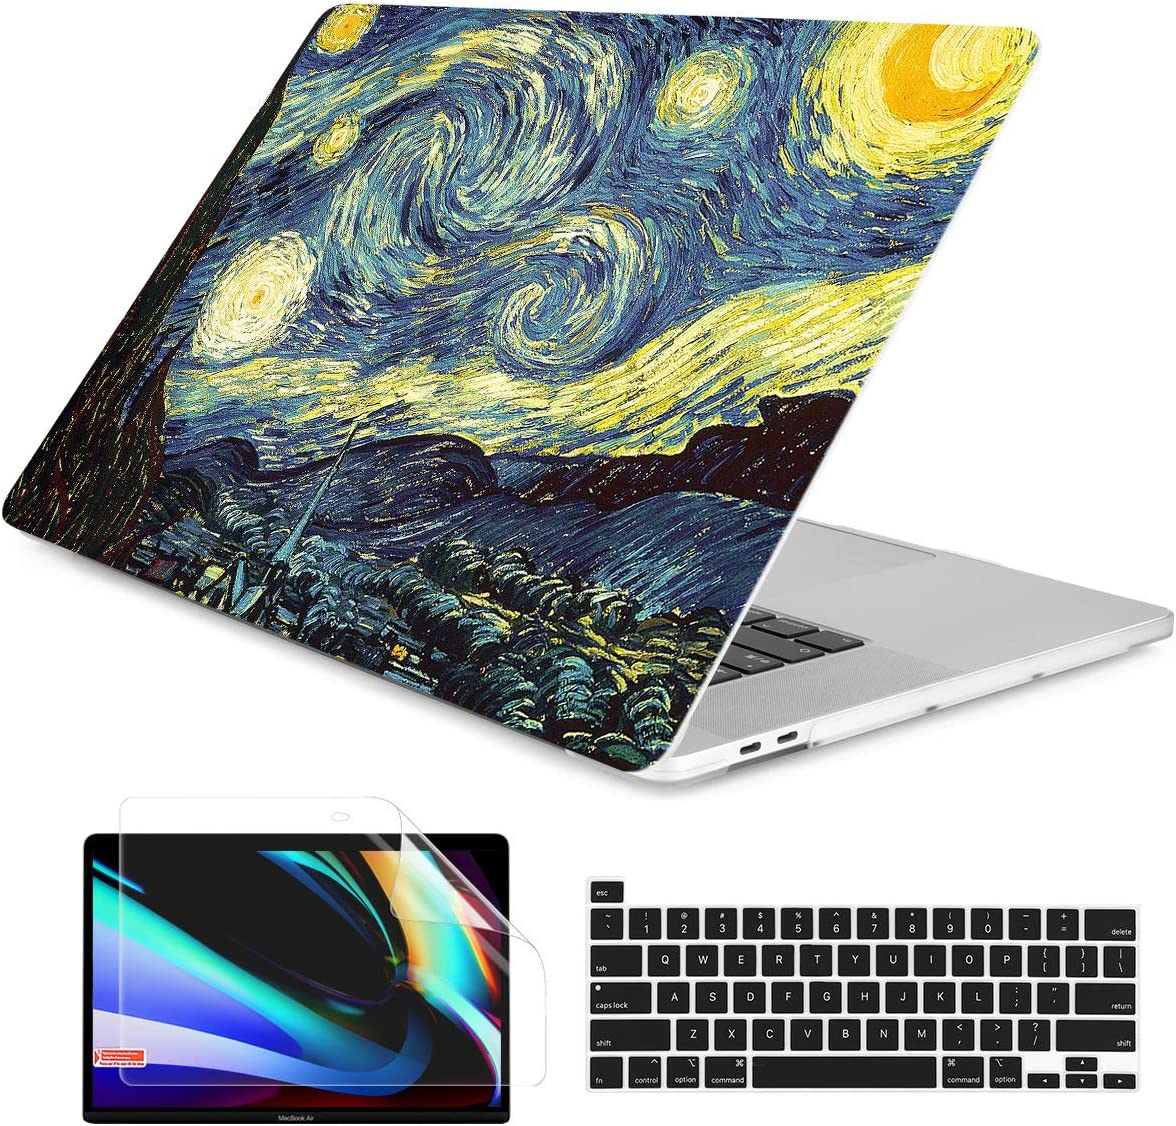 Dongke MacBook Pro 13 inch Case Model A2251/A2289 2020 Released, Plastic Hard Shell Case Cover for MacBook Pro 13 inch with Retina Display & Touch Bar Fits Touch ID, Starry Night